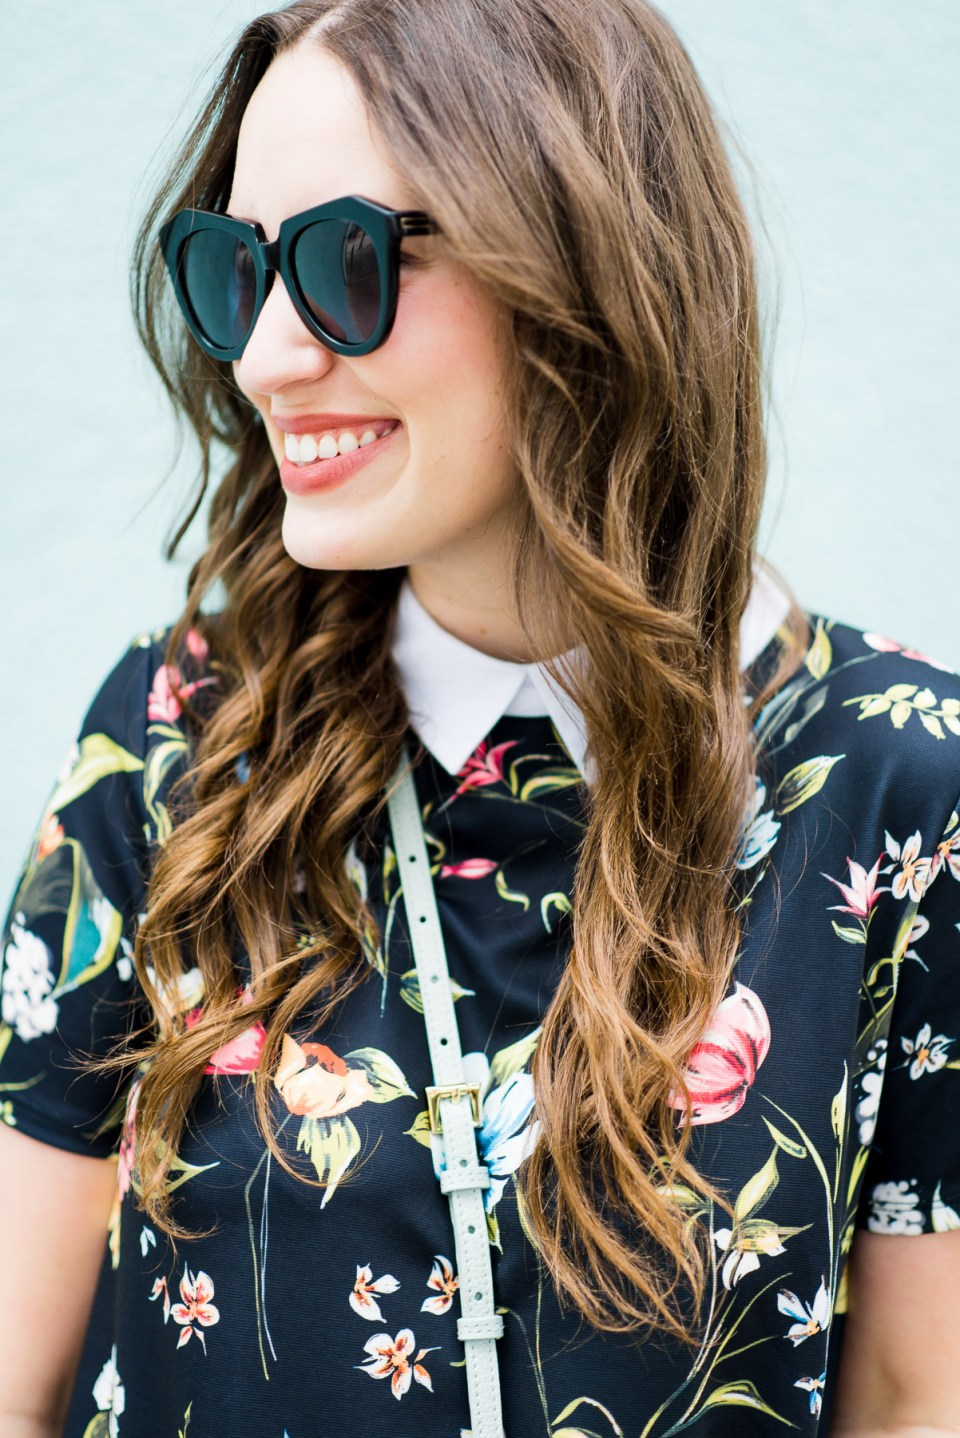 Floral_Shirt_Dress_Adidas_Sneakers-12